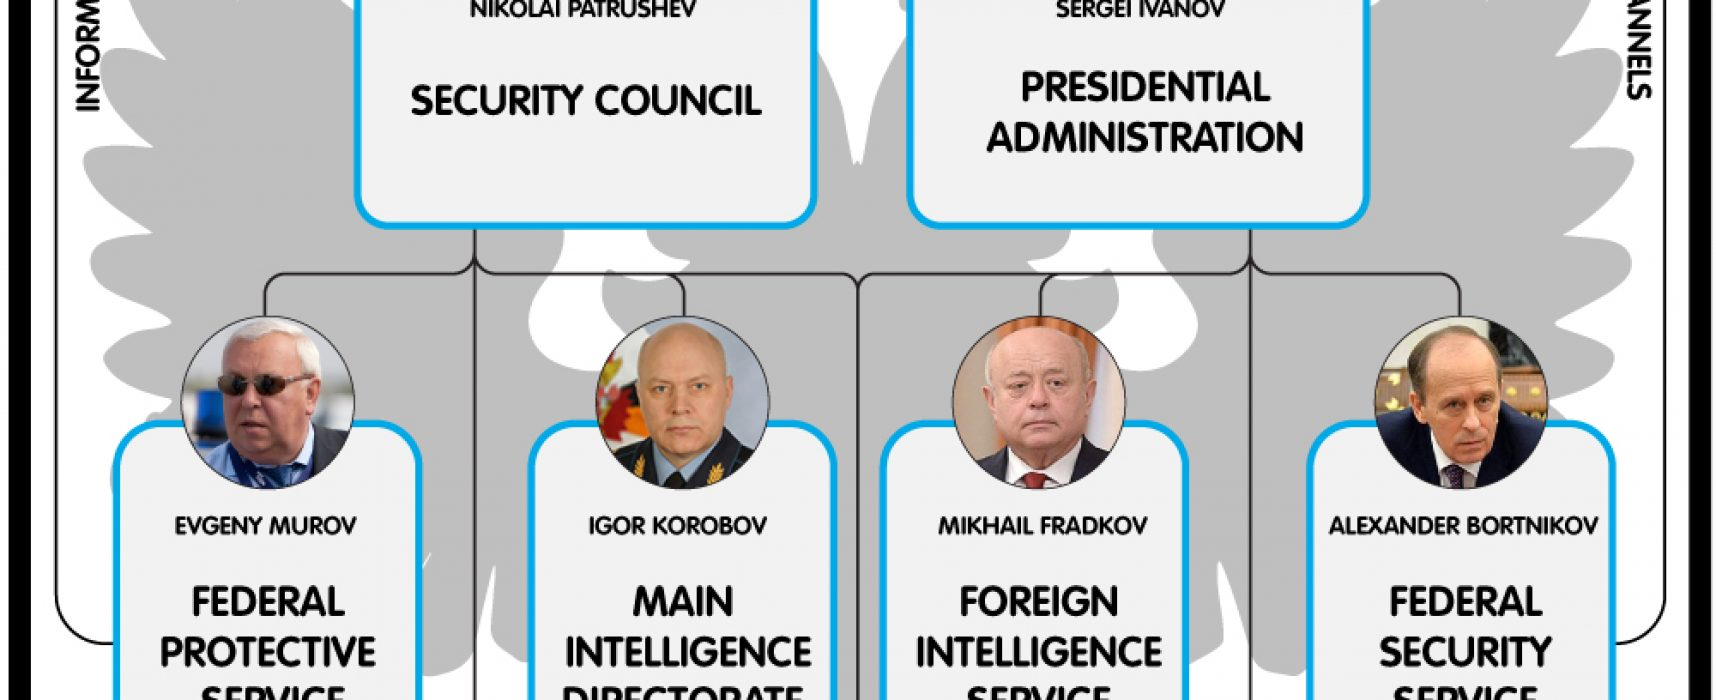 Putin's hydra: Inside Russia's intelligence services